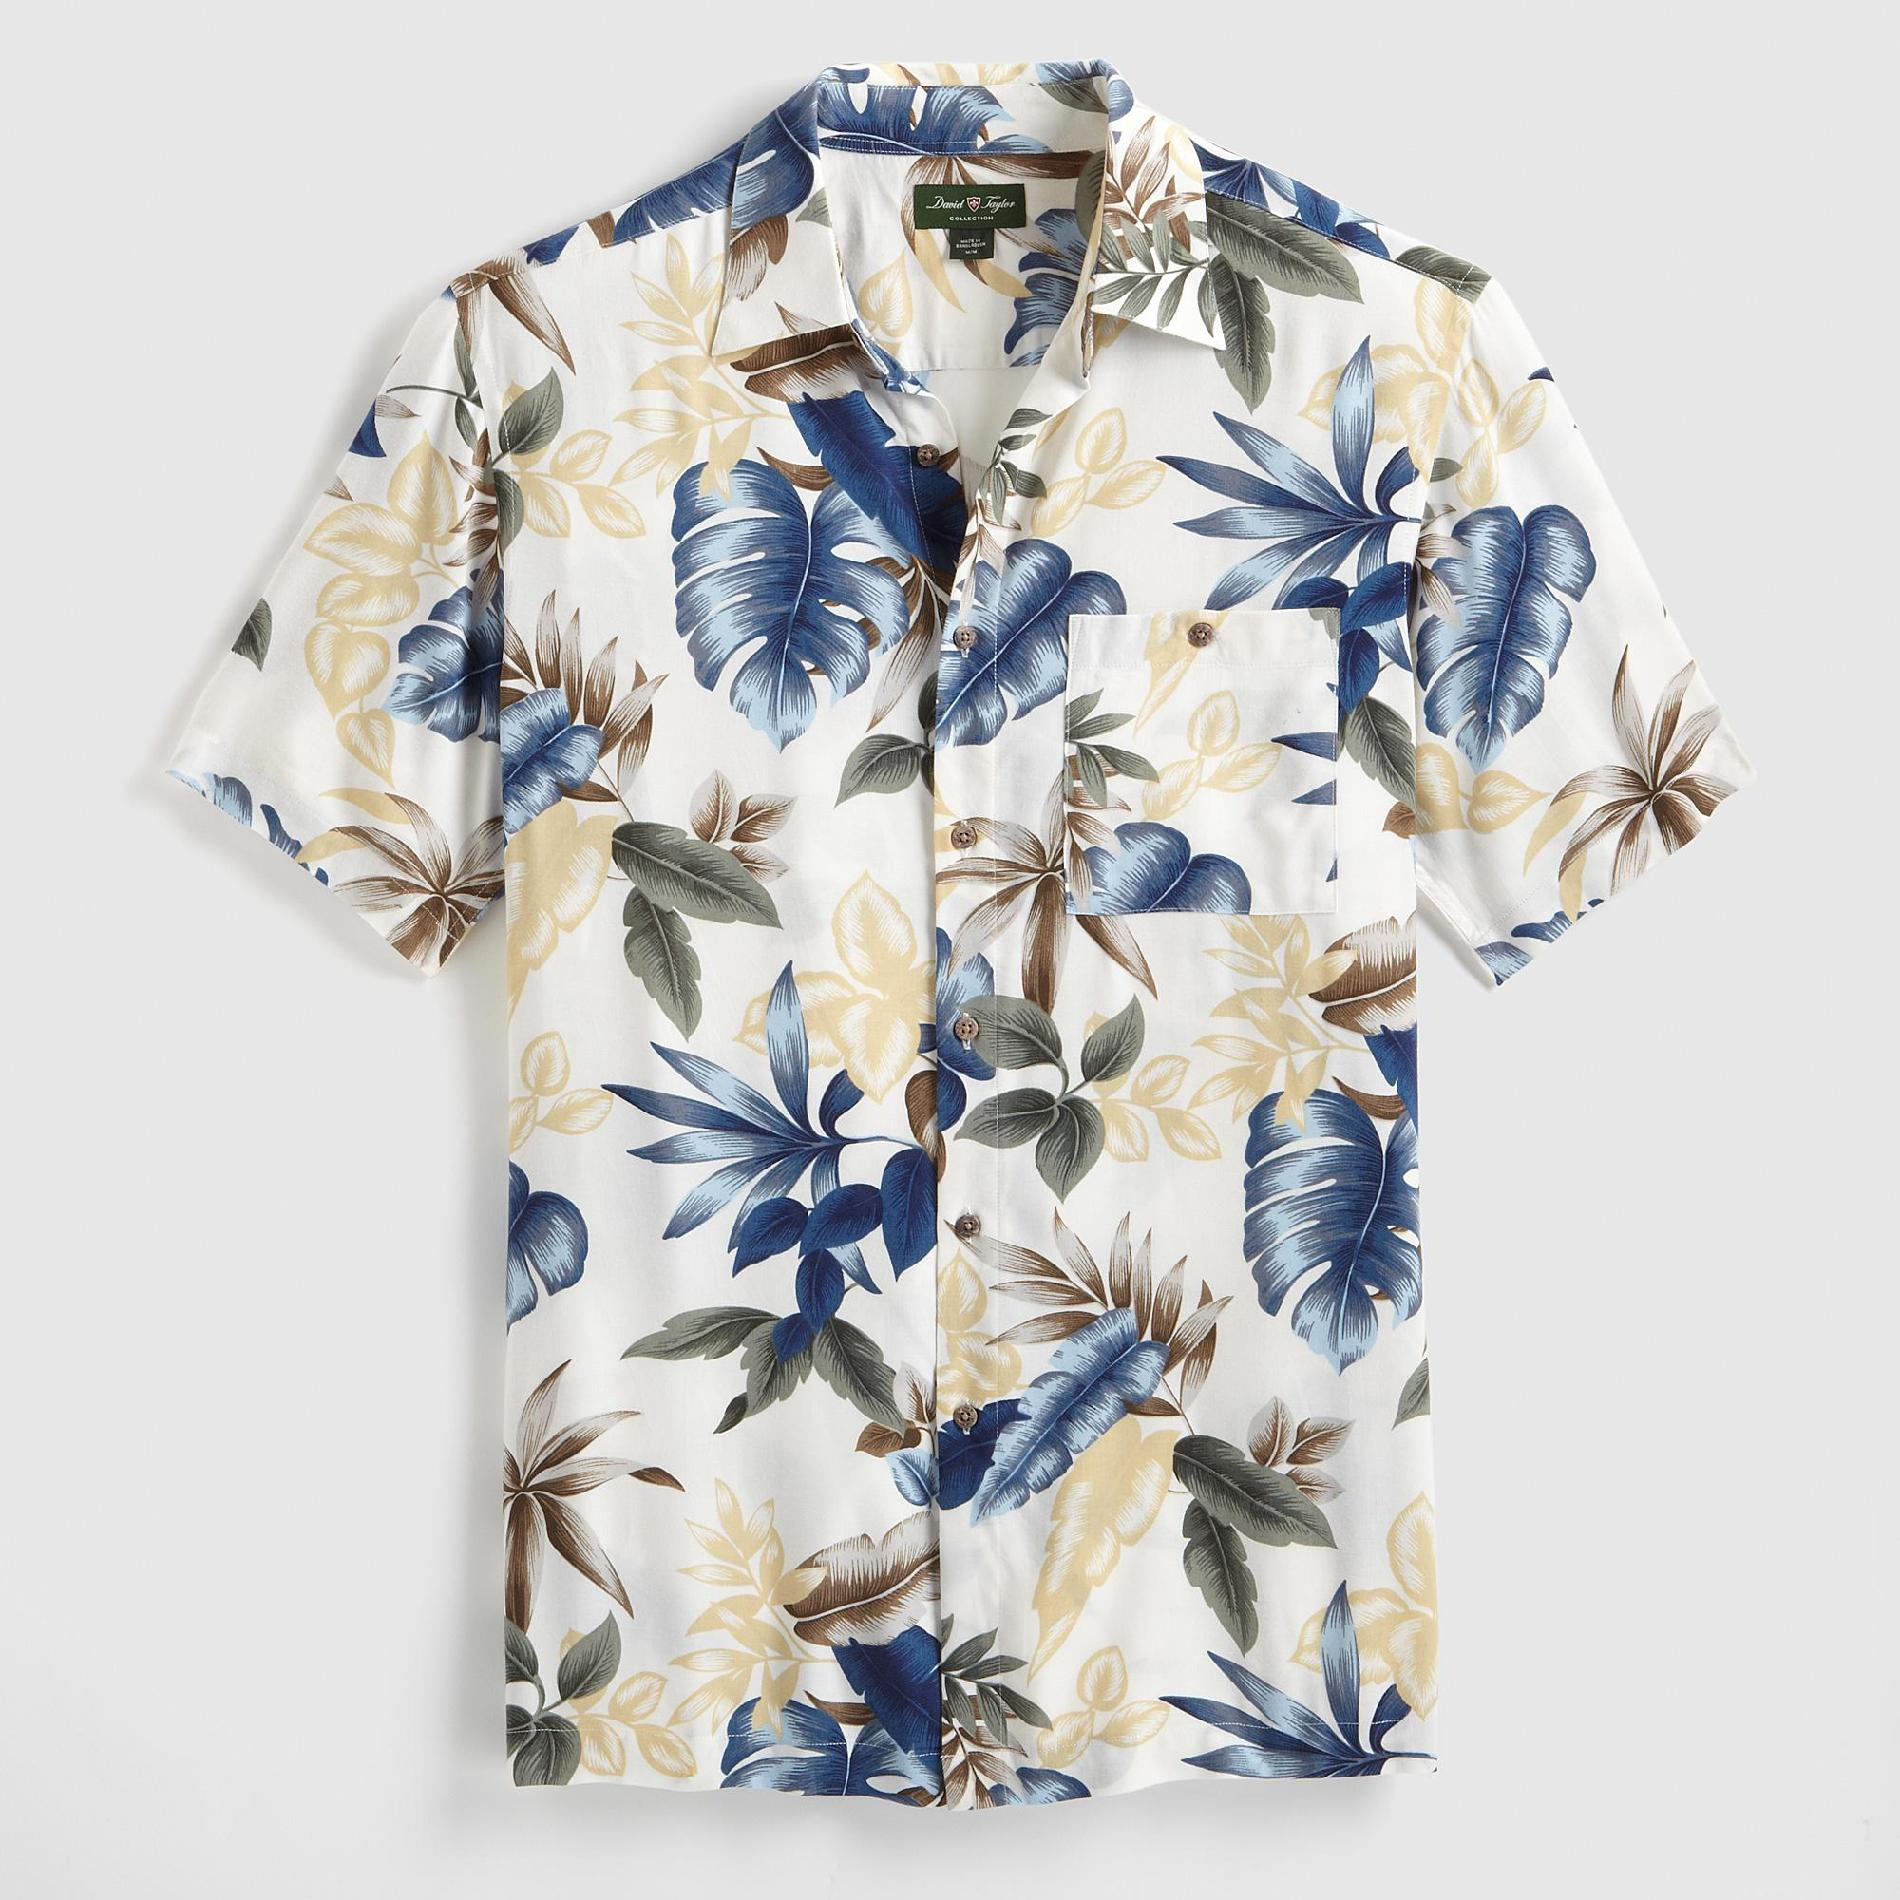 David Taylor Men's Woven Shirt - Palms at Kmart.com